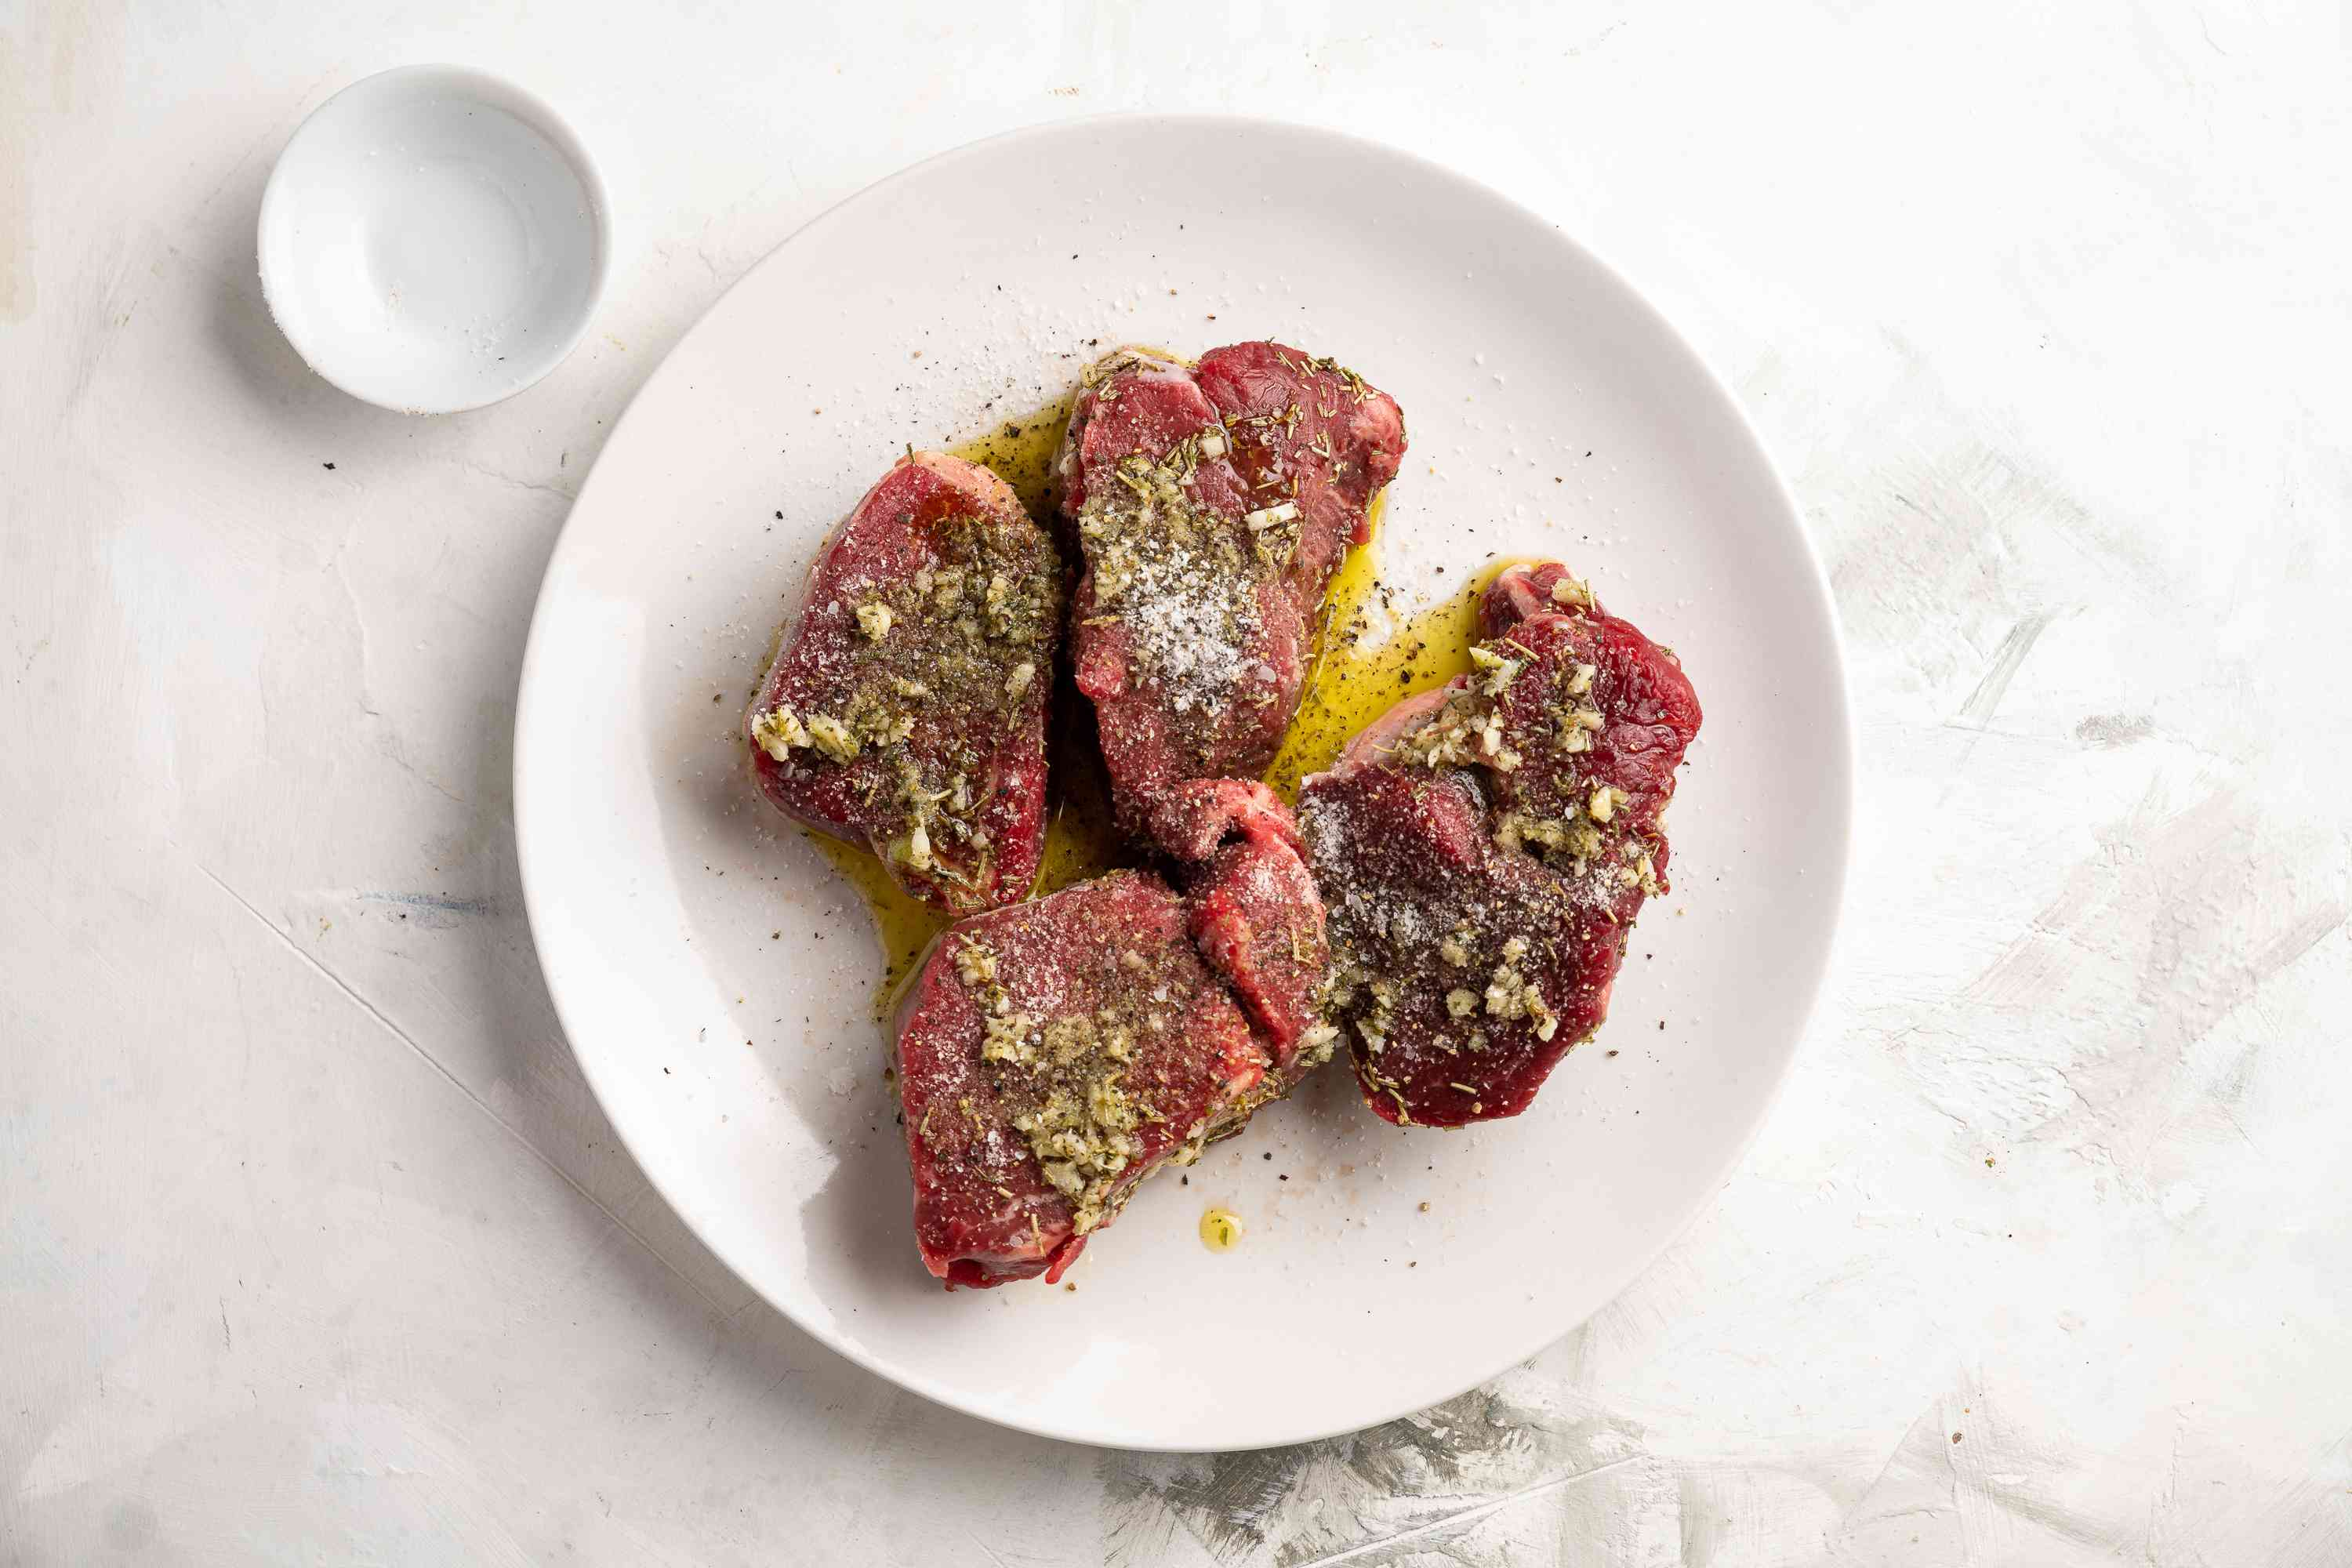 Remove the steaks from the fridge, and season both sides with salt and pepper